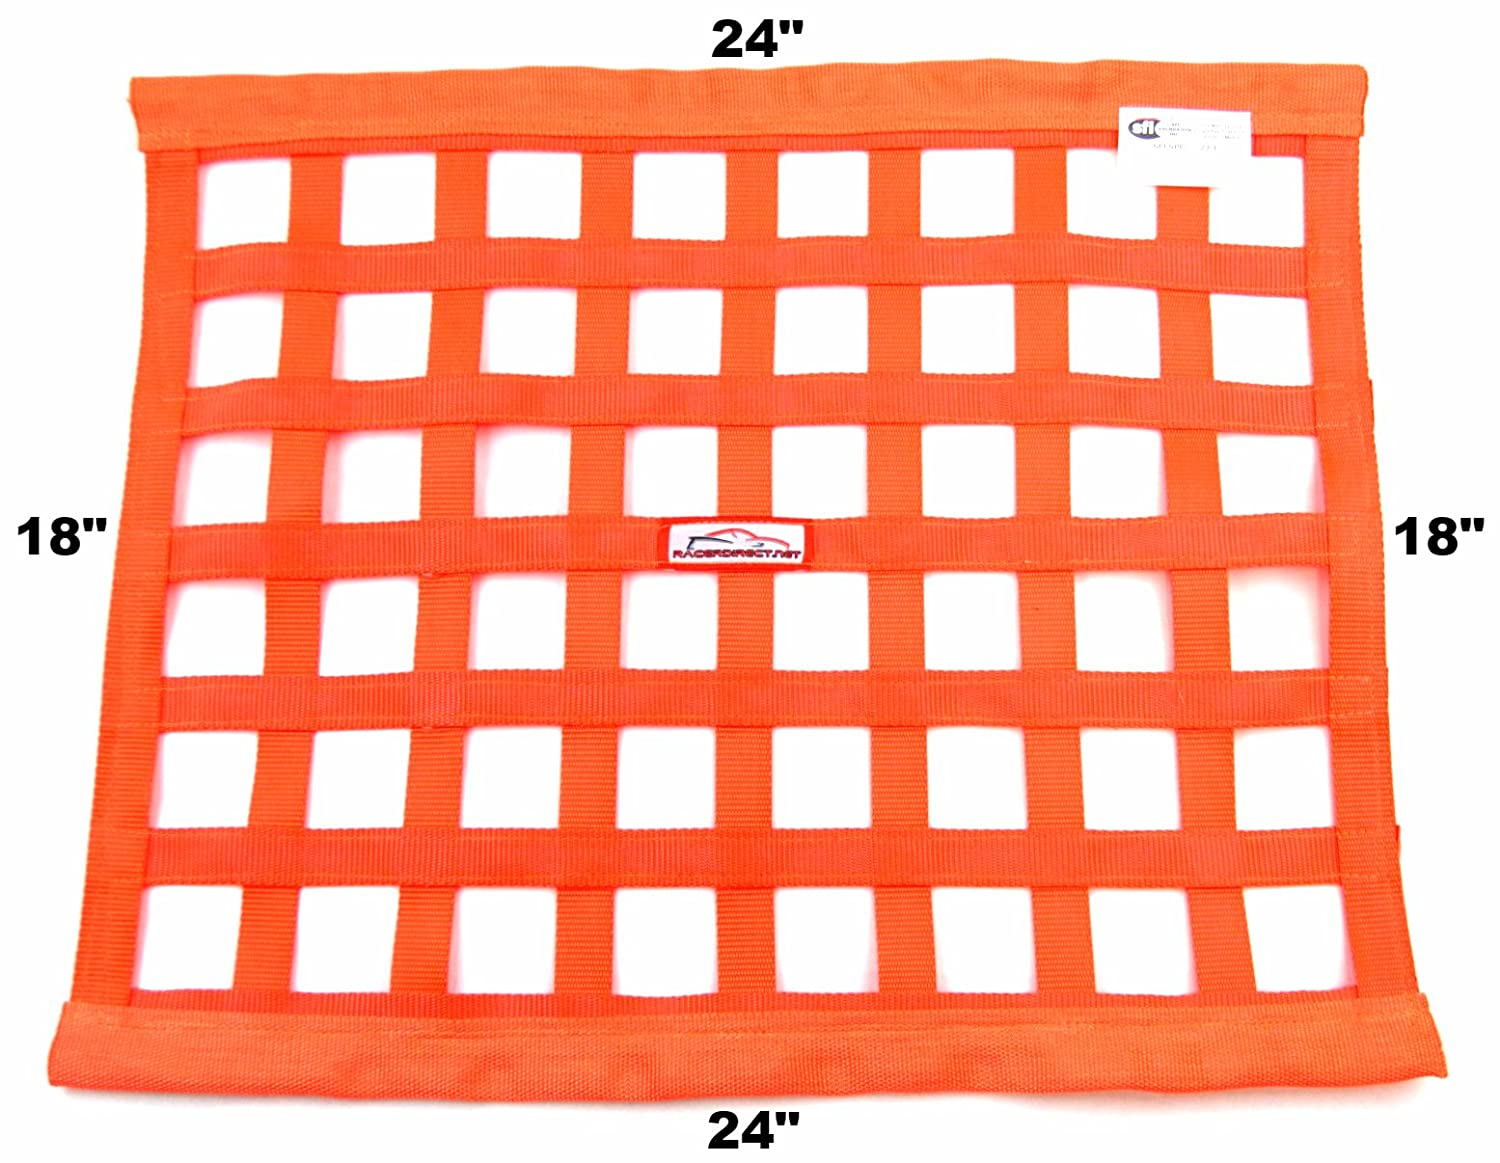 Racerdirect.net SFI 27.1 Race Window NET Rectangle 24 X 18 Orange